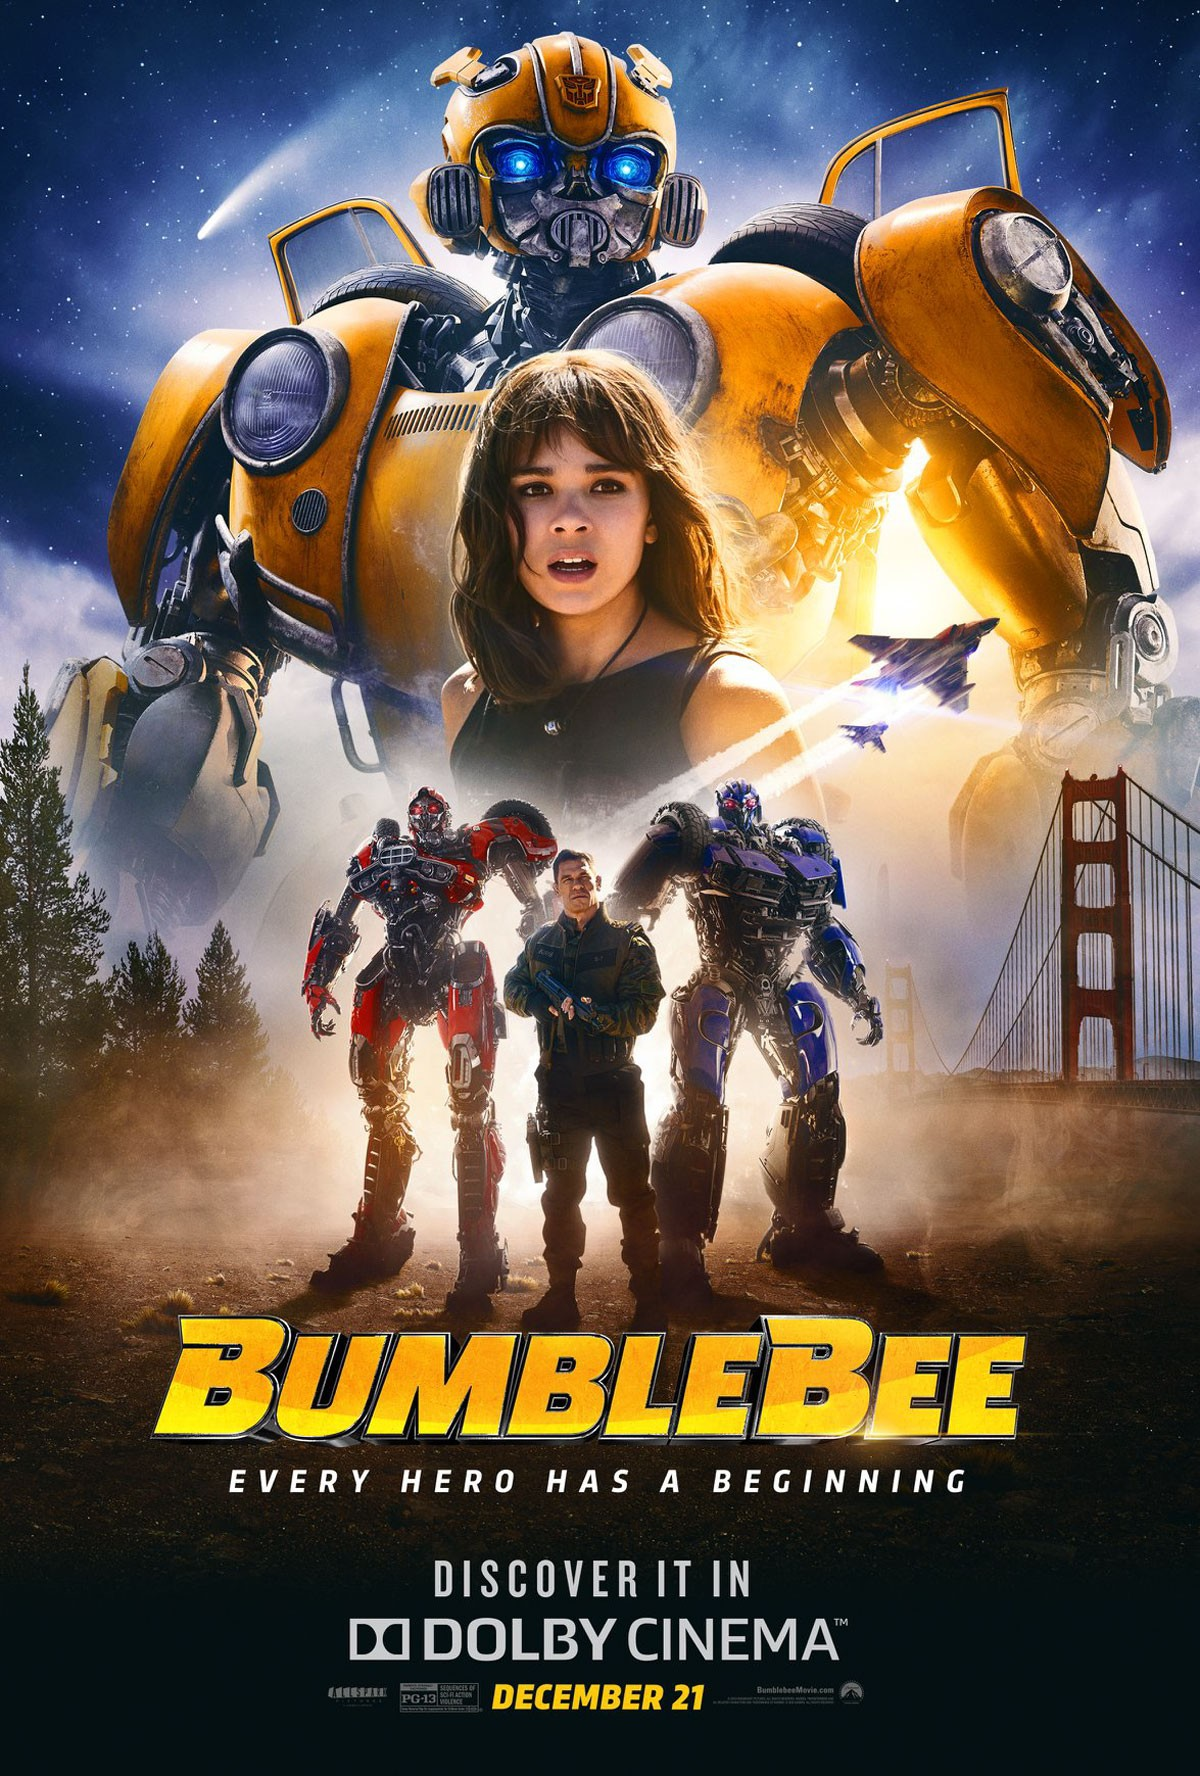 Transformers News: Re: Transformers Bumblebee Movie Discussion Thread